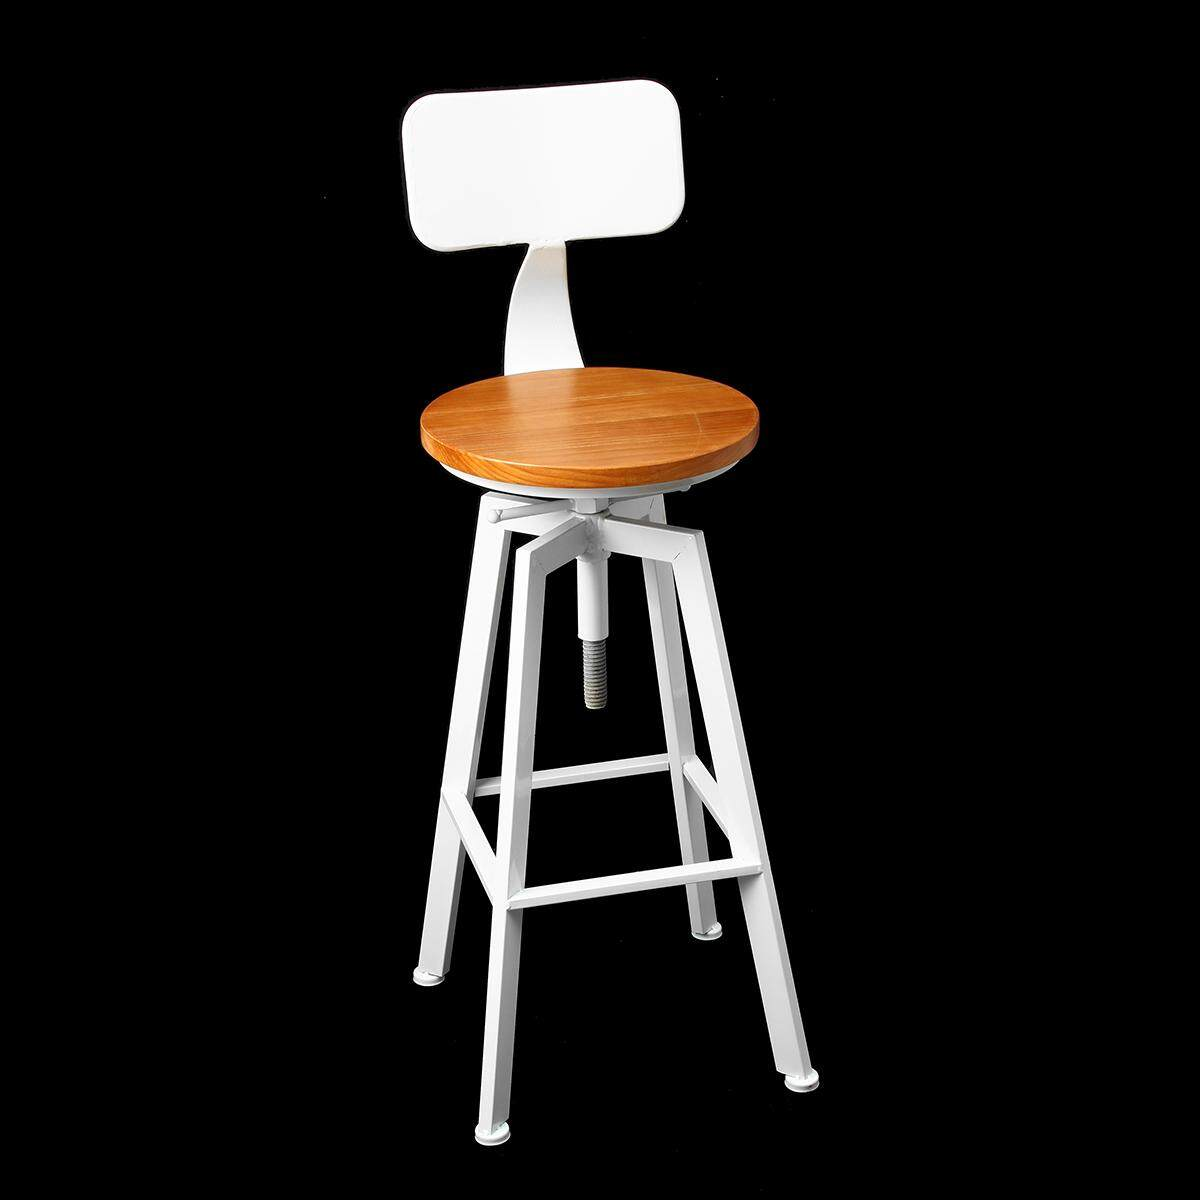 Adjustable Bar Chairs Wood Iron Stool Retro Industrial 360 Degree Rotating Lift